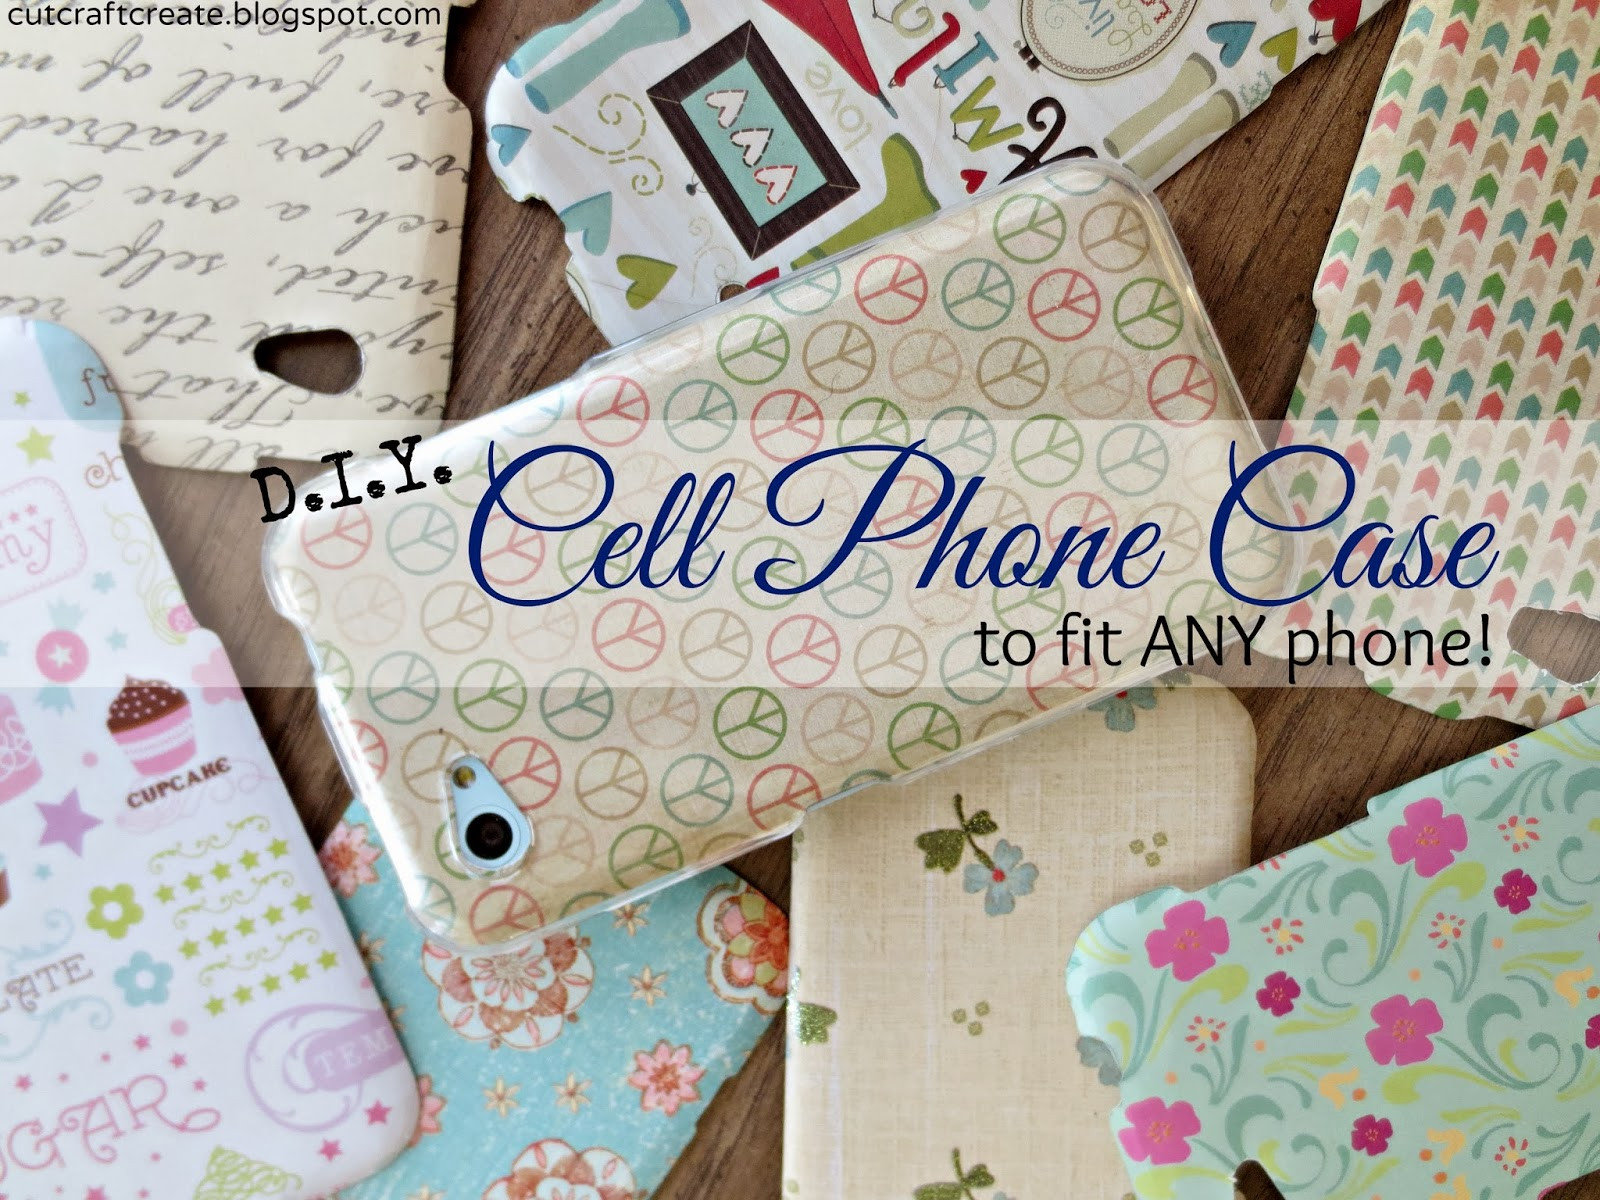 Best ideas about DIY Cell Phone Case . Save or Pin Cut Craft Create DIY Cell Phone Case Tutorial to fit Now.